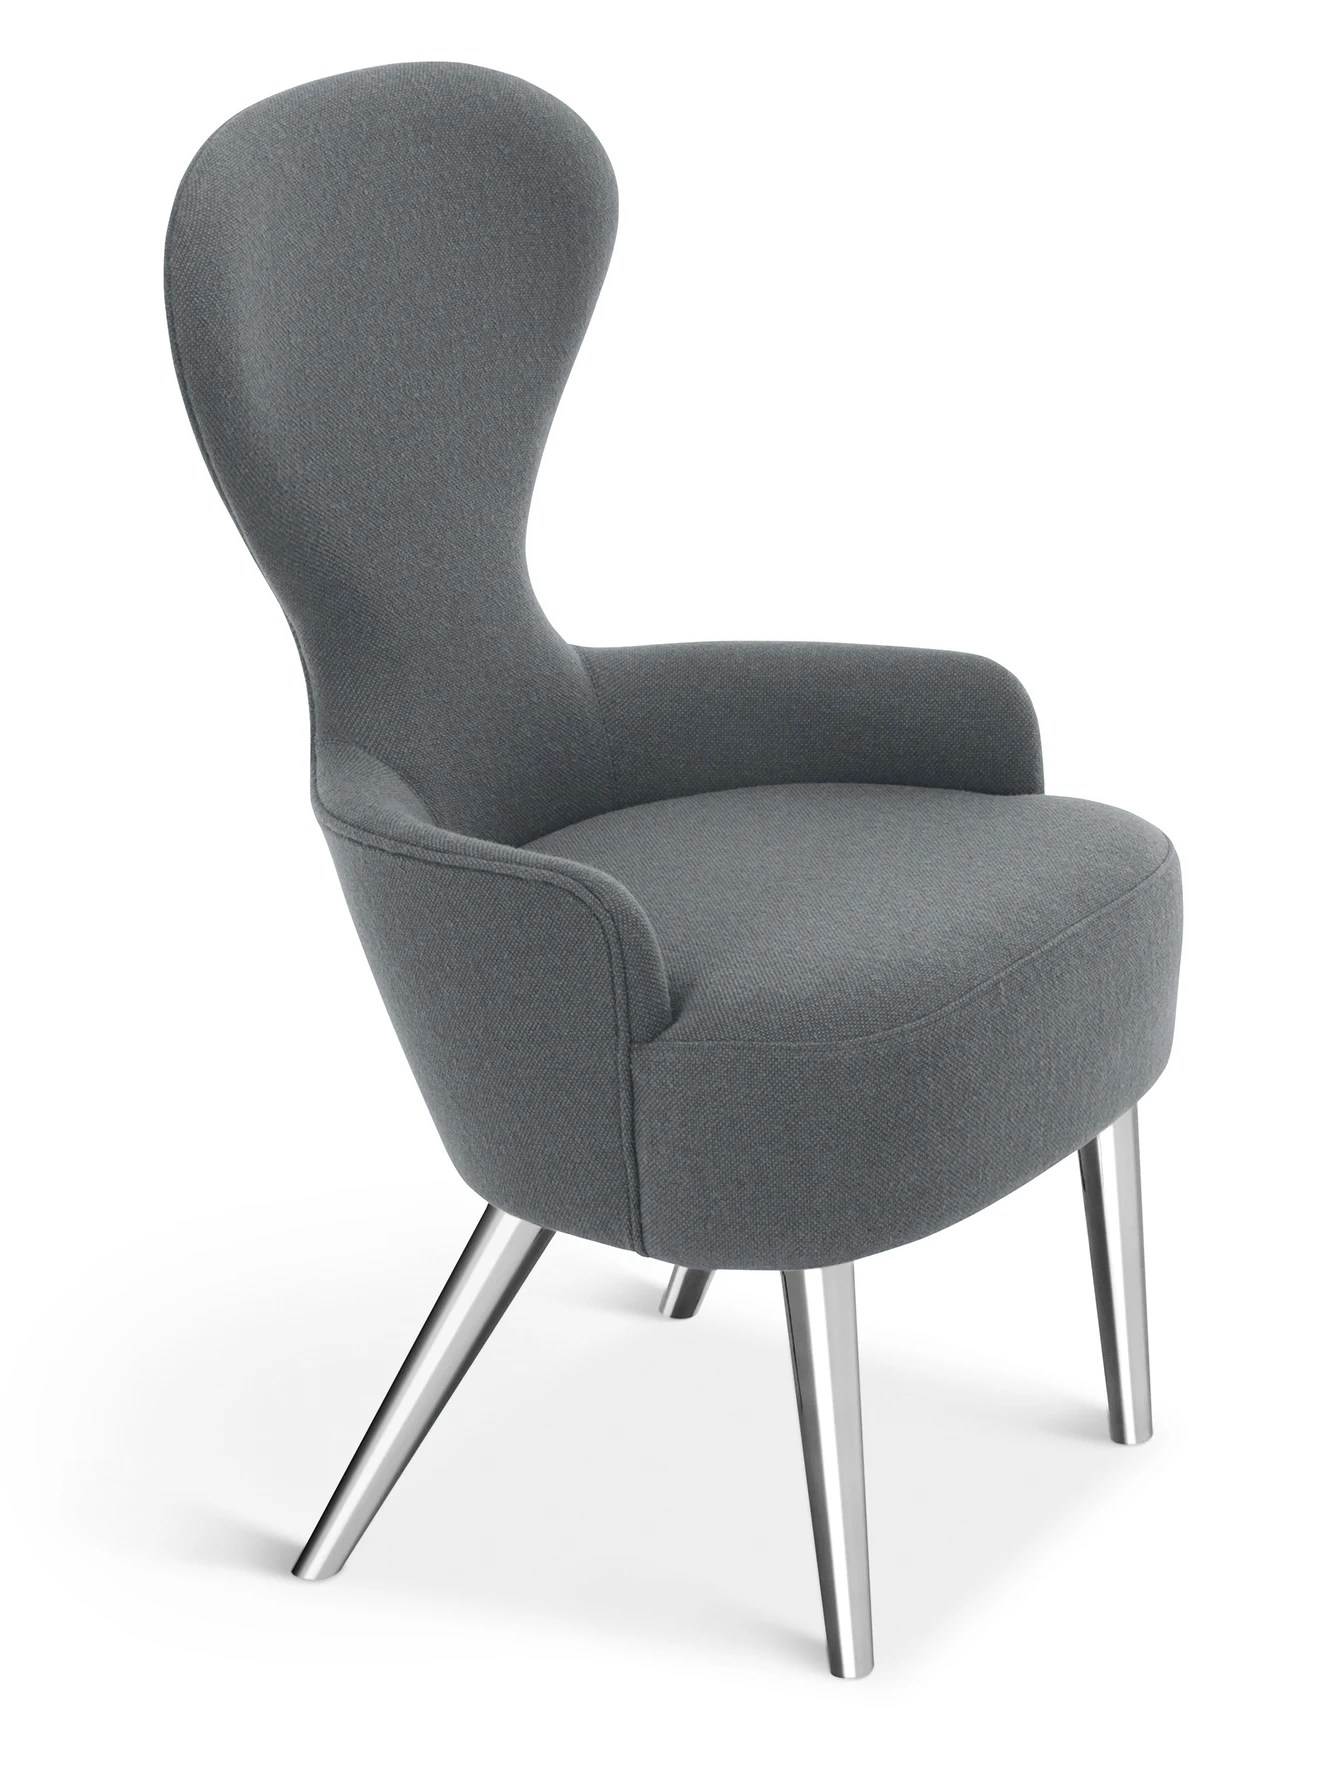 wingback dining chairs canada bedroom chair adelaide tom dixon gr shop